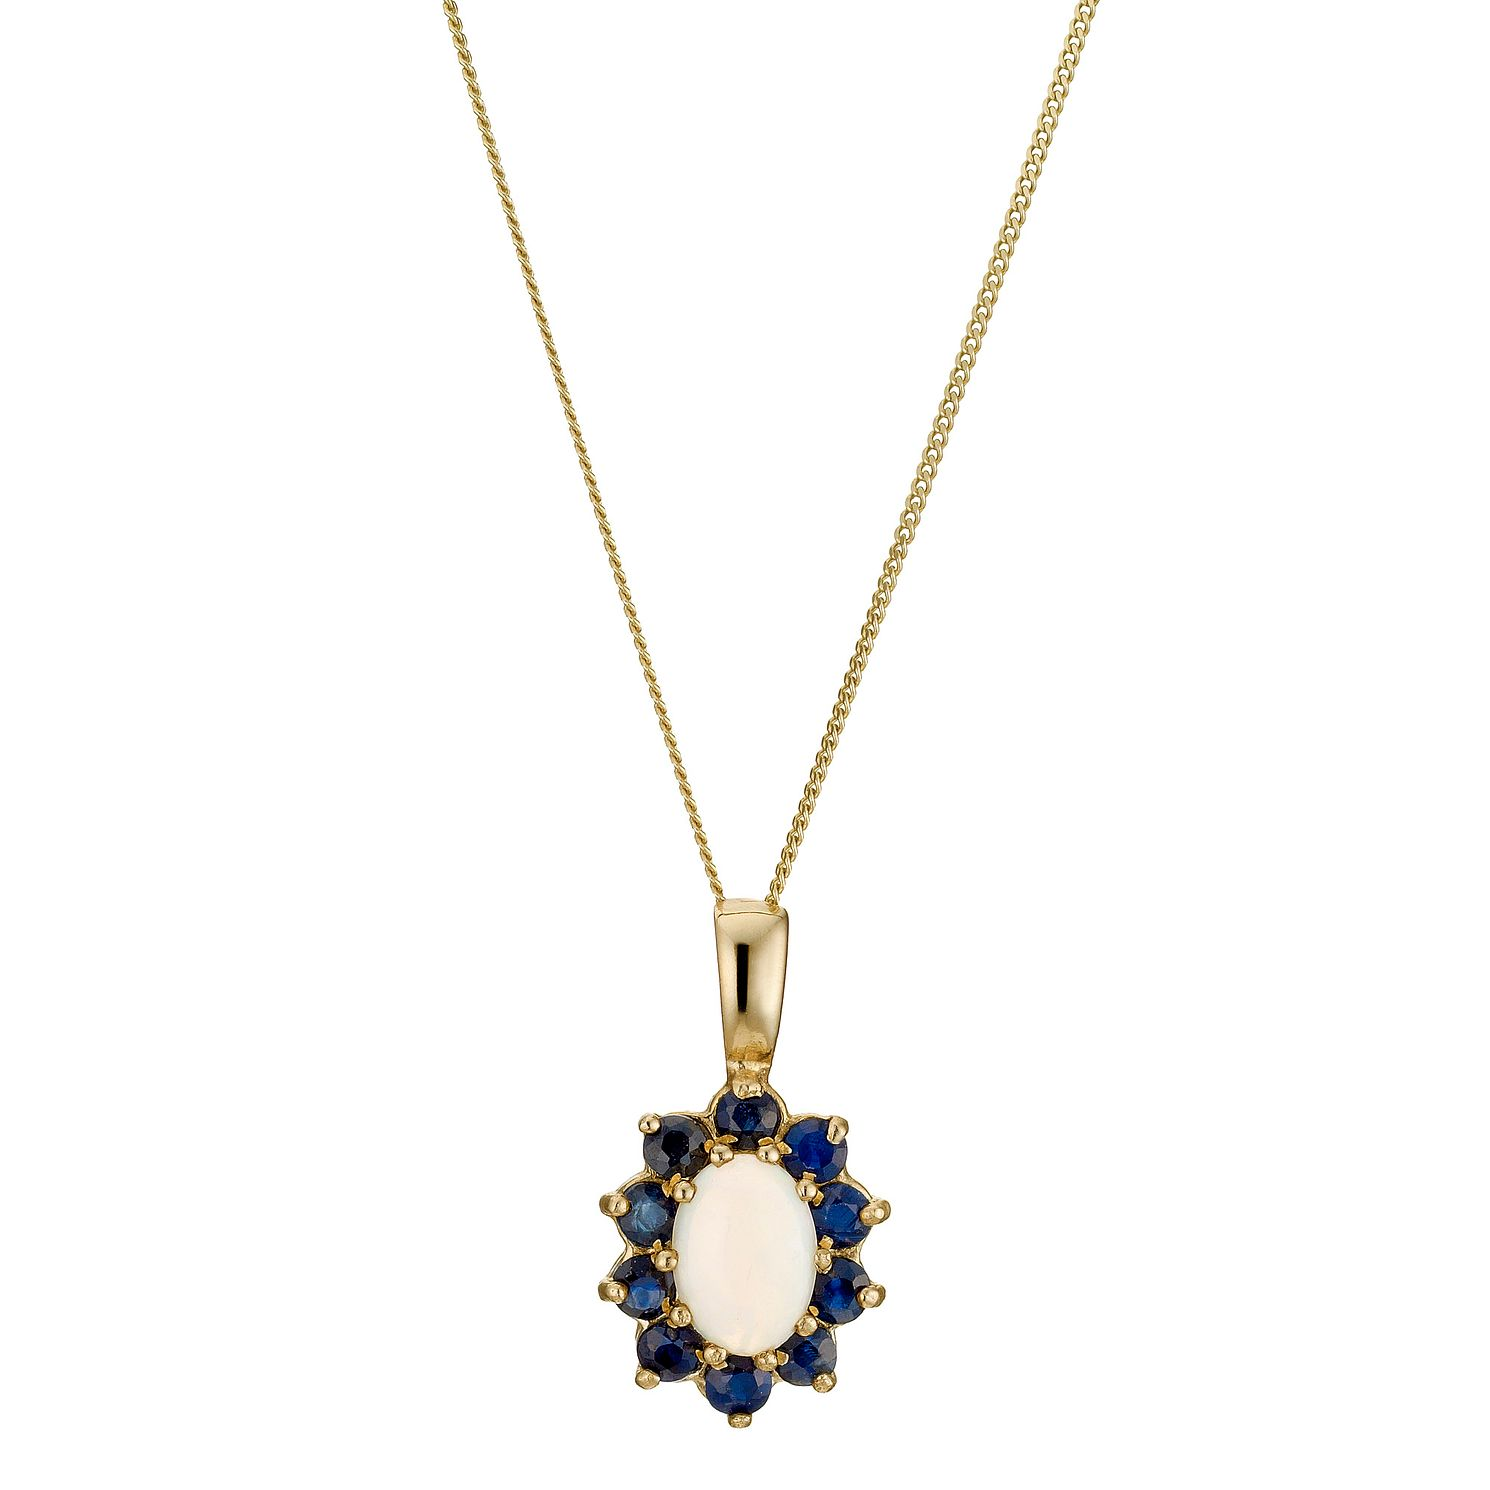 Sapphire necklaces hmuel 9ct yellow gold sapphire opal pendant product number 8974780 aloadofball Image collections